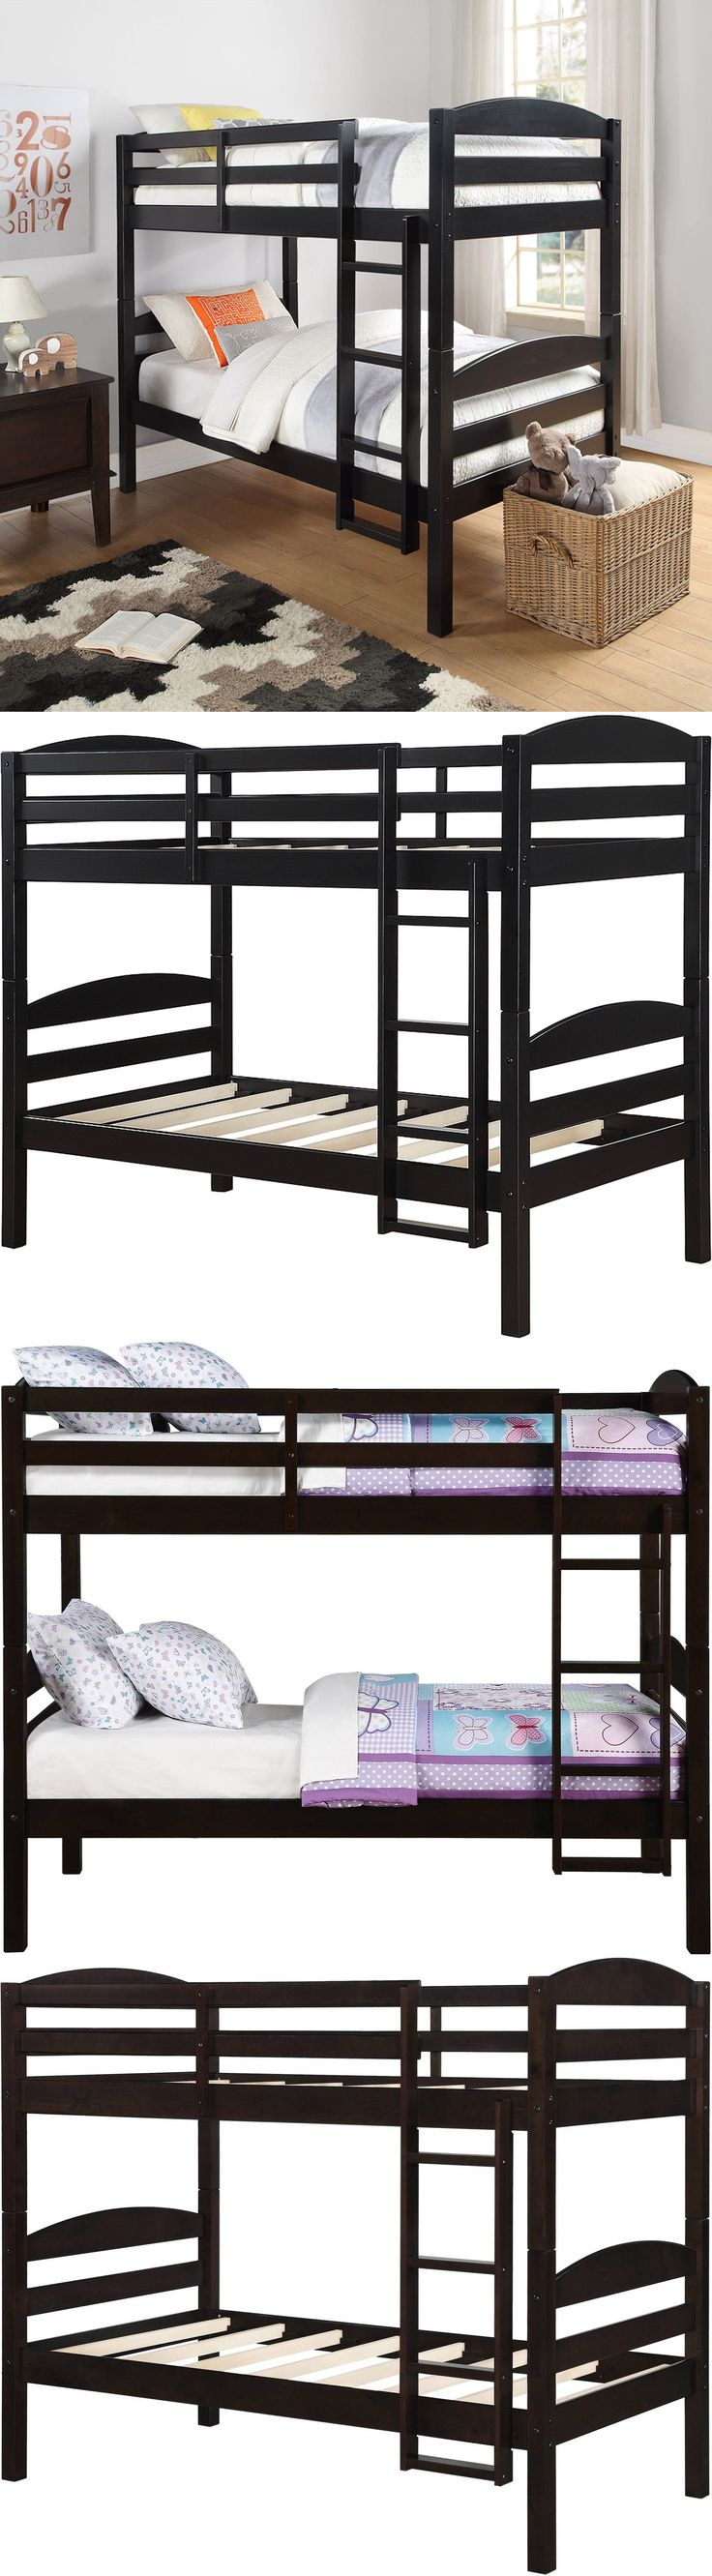 Kids Furniture: Bunk Beds Twin Over Twin For Kids Boys Girls Bunkbeds Convertible Wood Bed Black BUY IT NOW ONLY: $187.08